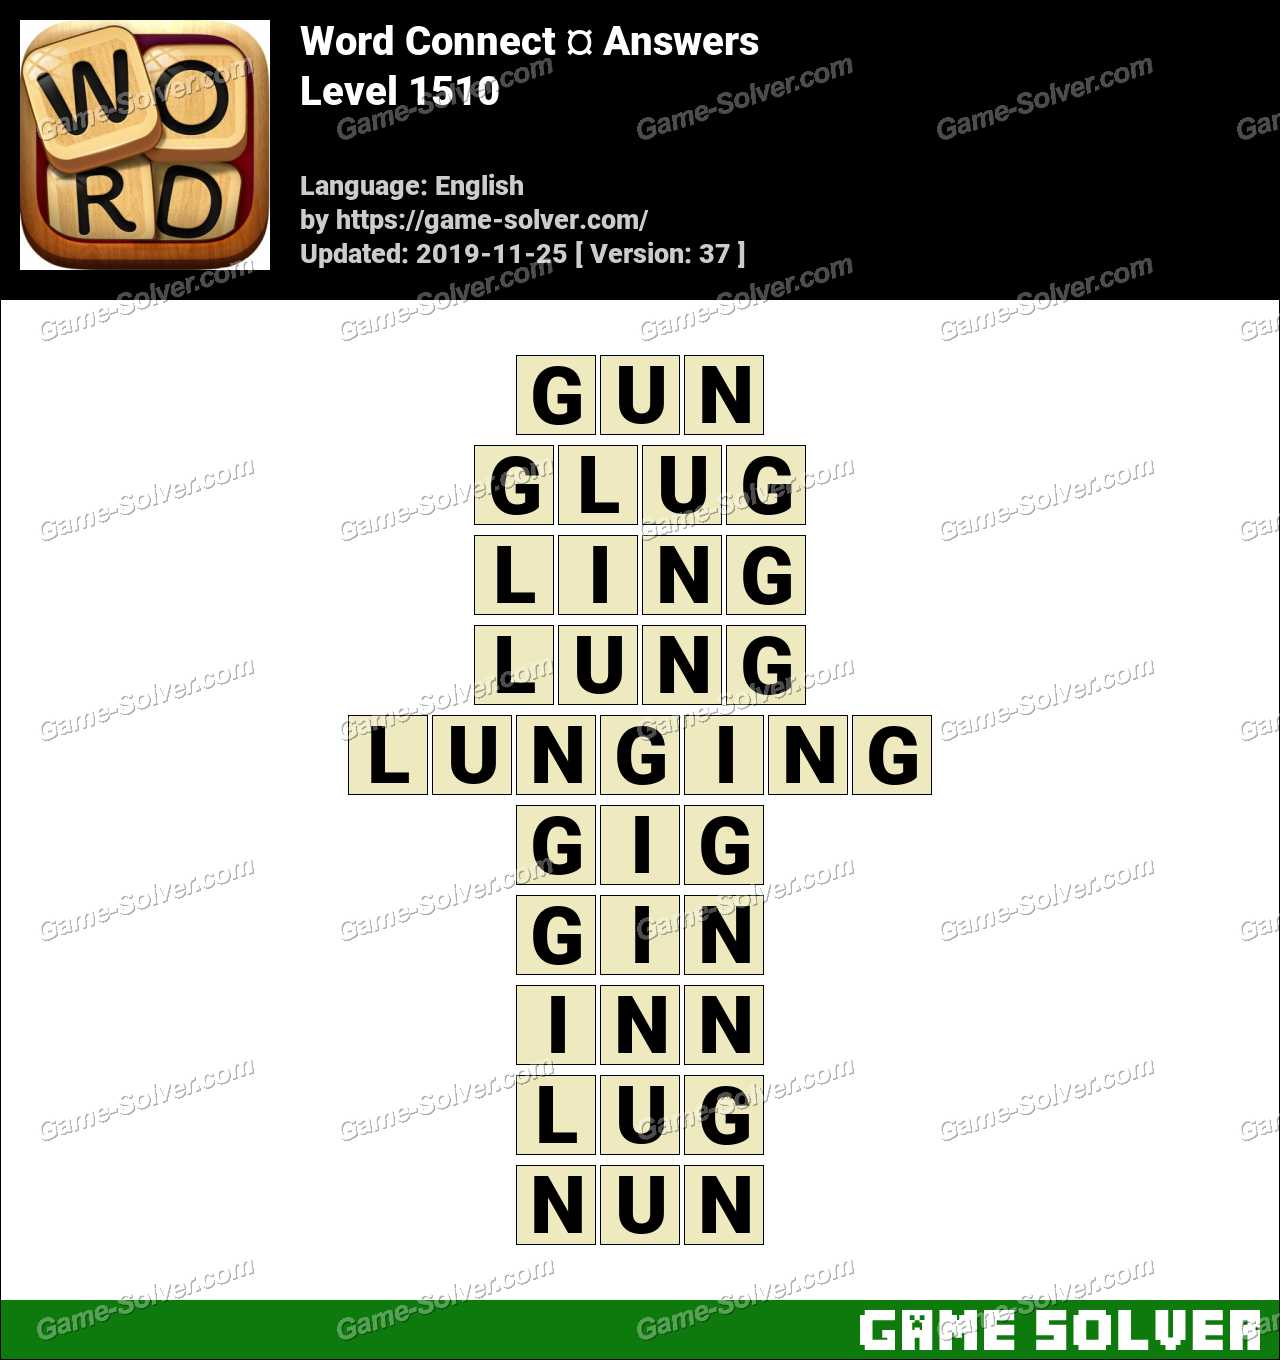 Word Connect Level 1510 Answers